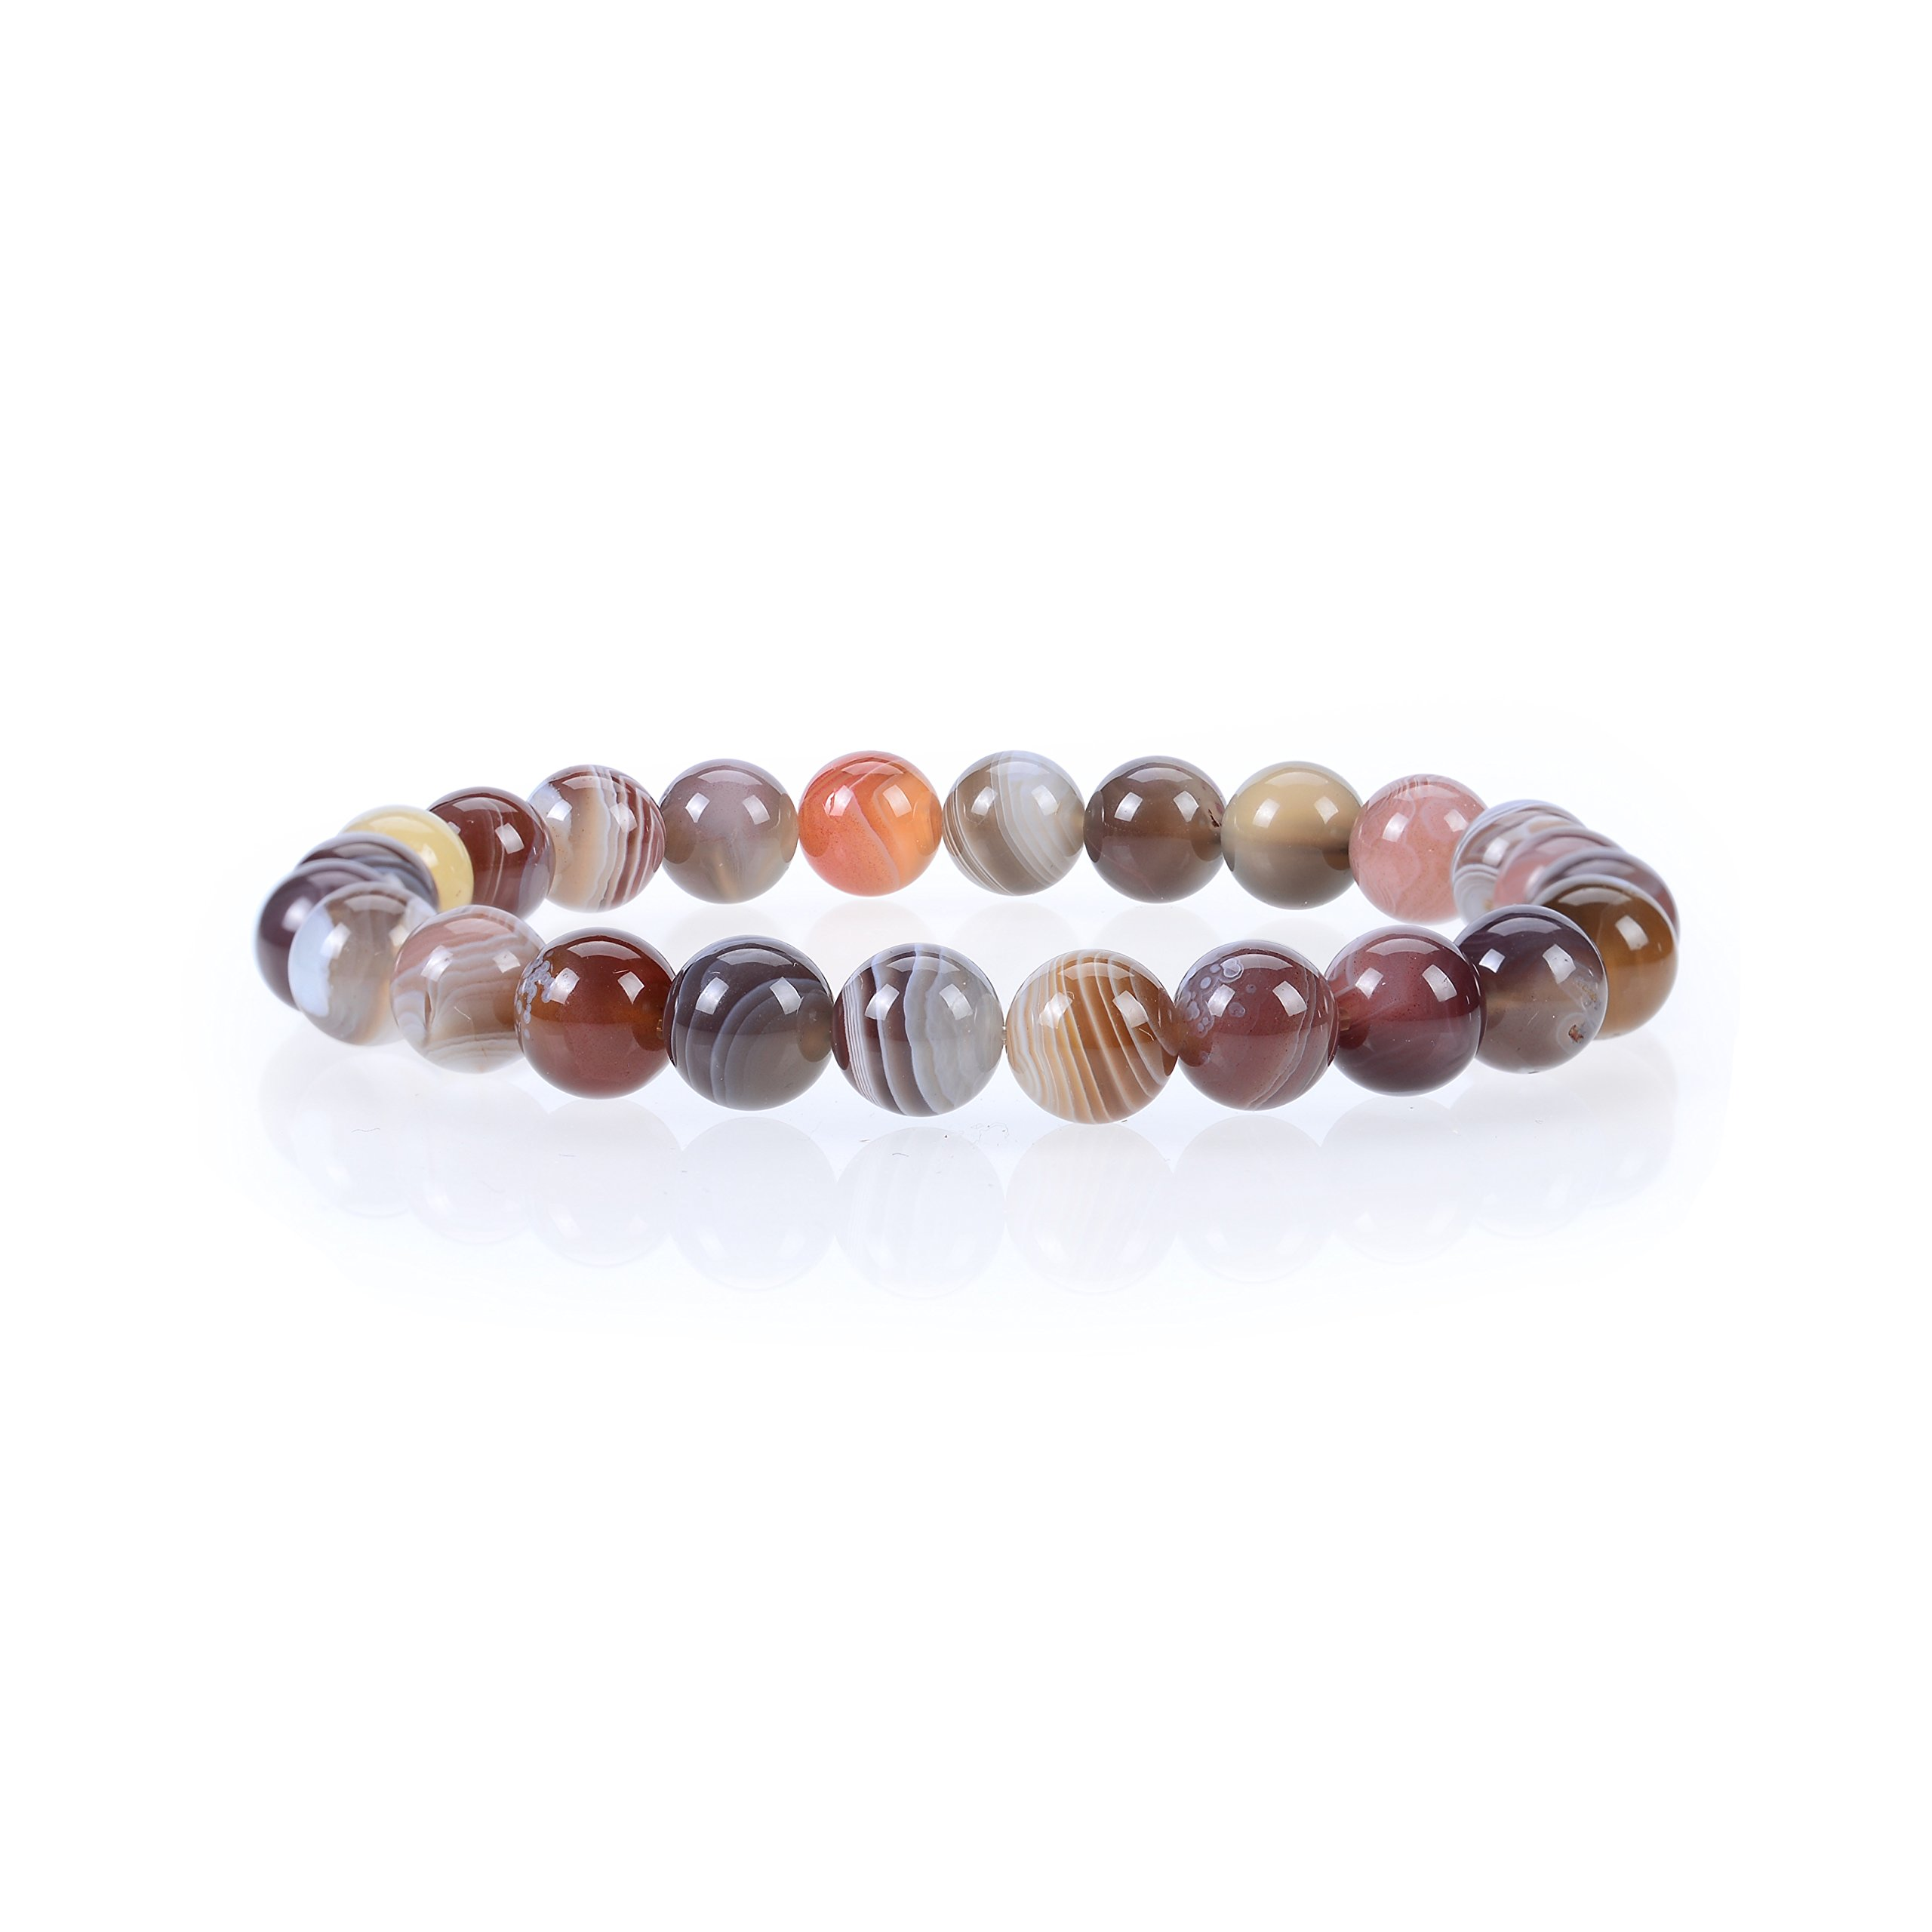 Cherry Tree Collection Natural Semi-Precious Gemstone Beaded Stretch Bracelet 8mm Round Beads 7'' (Botswana Agate)